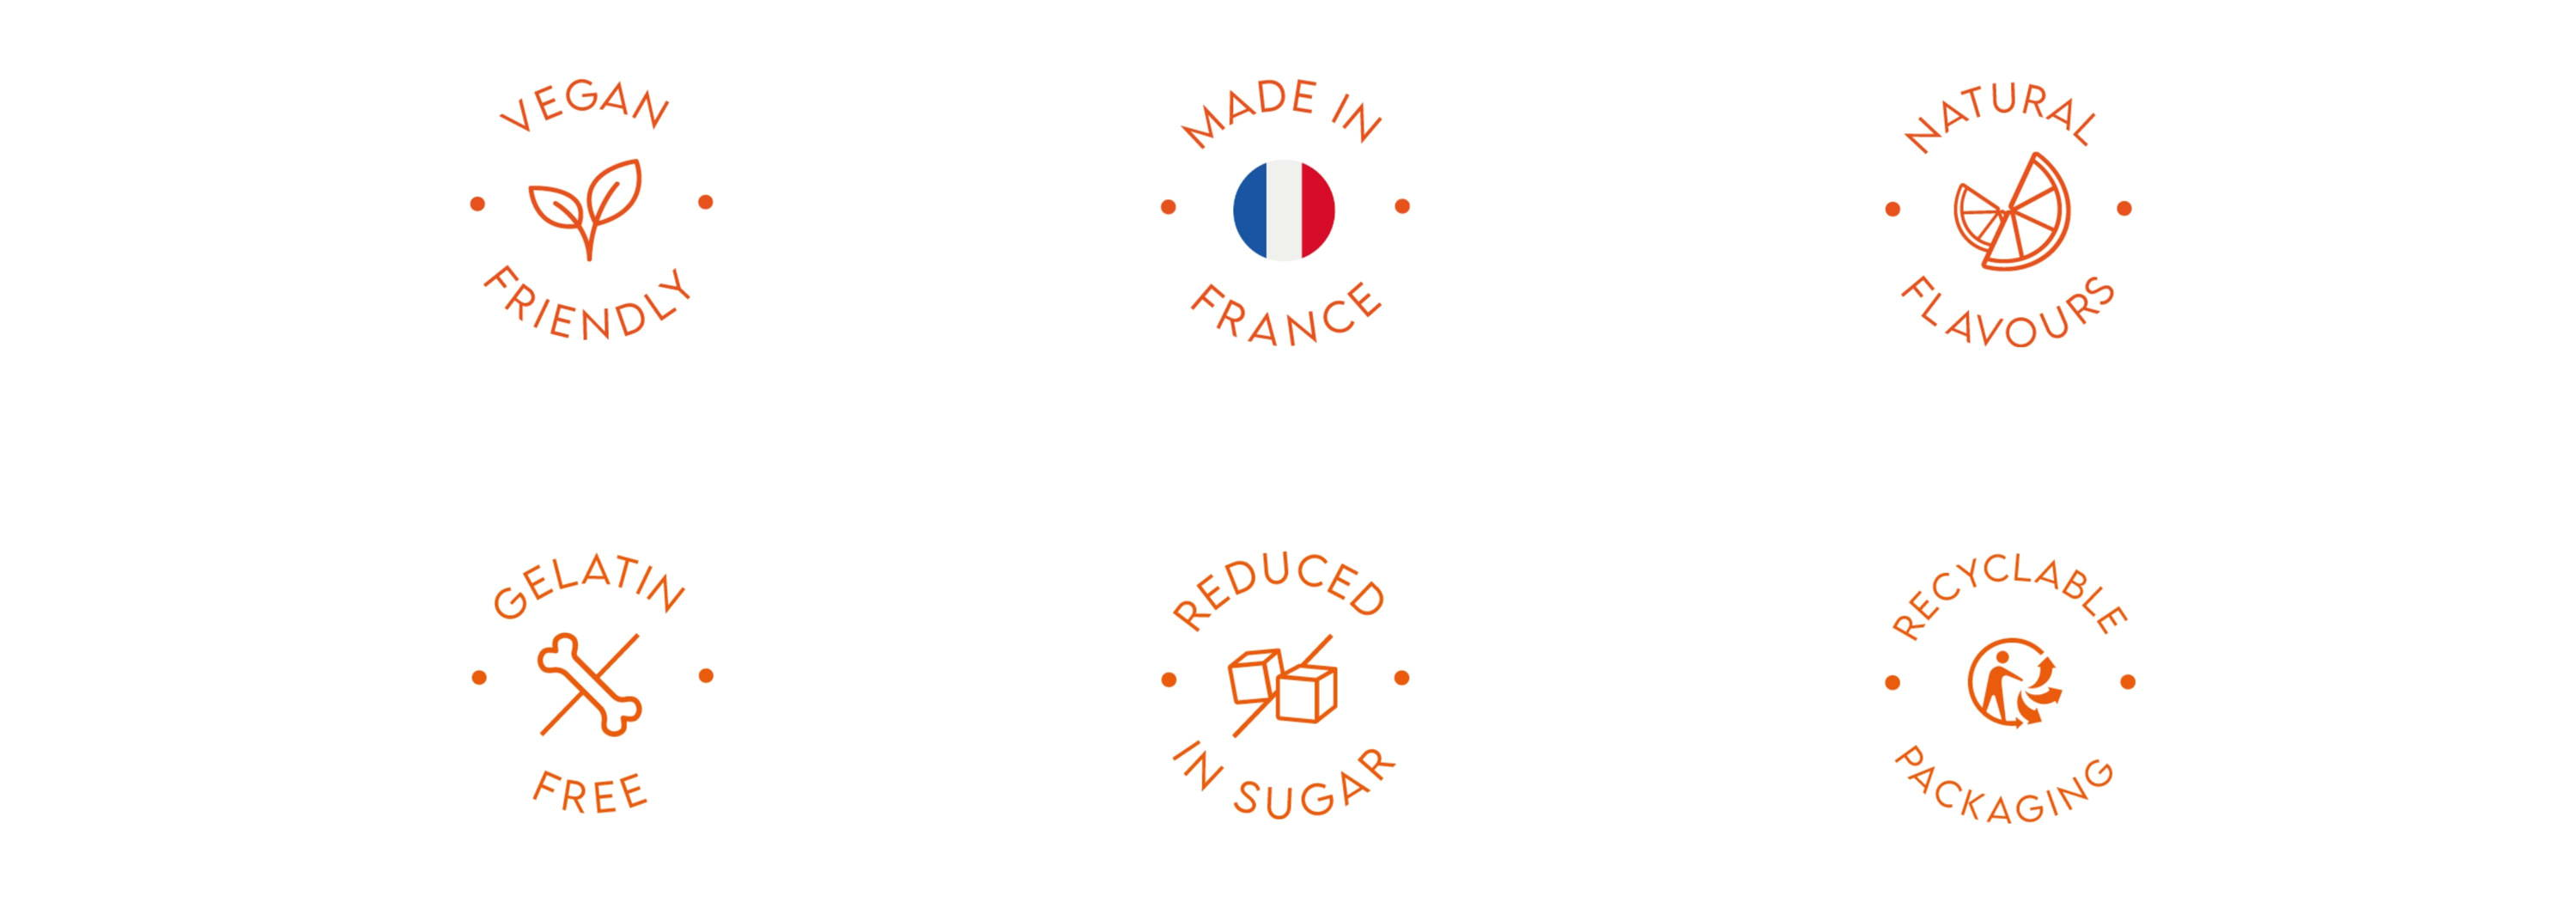 vegan friendly, made in france, natural flavours, gelatin free, reduced in sugar, recyclable packaging icons